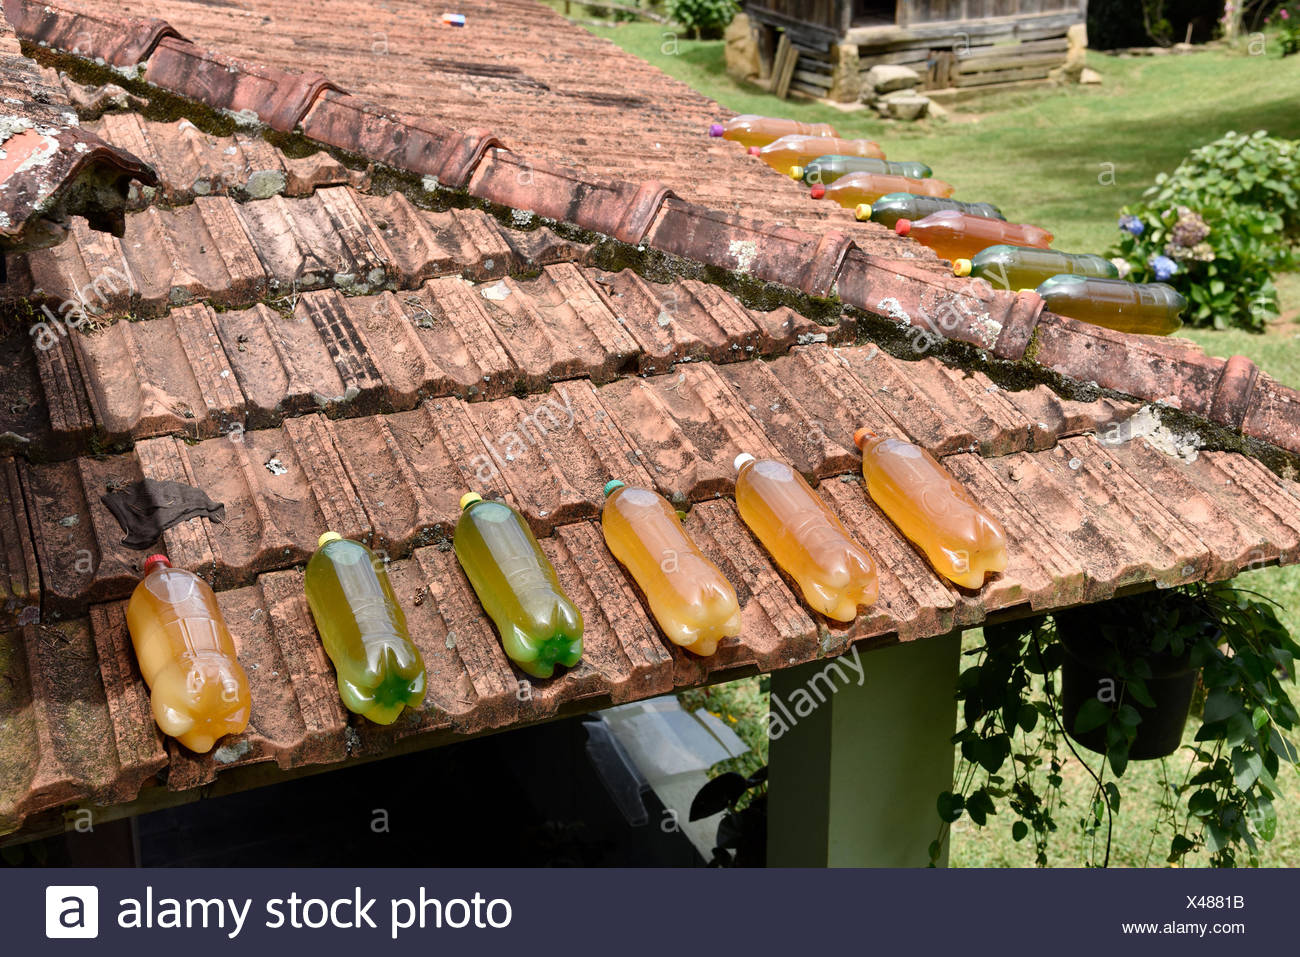 Pet bottles with honey on top of roof in a house in the neighborhood Fragária in Serra da Mantiqueira, Itamonte, Minas Gerais, Brazil, 12.2016 - Stock Image